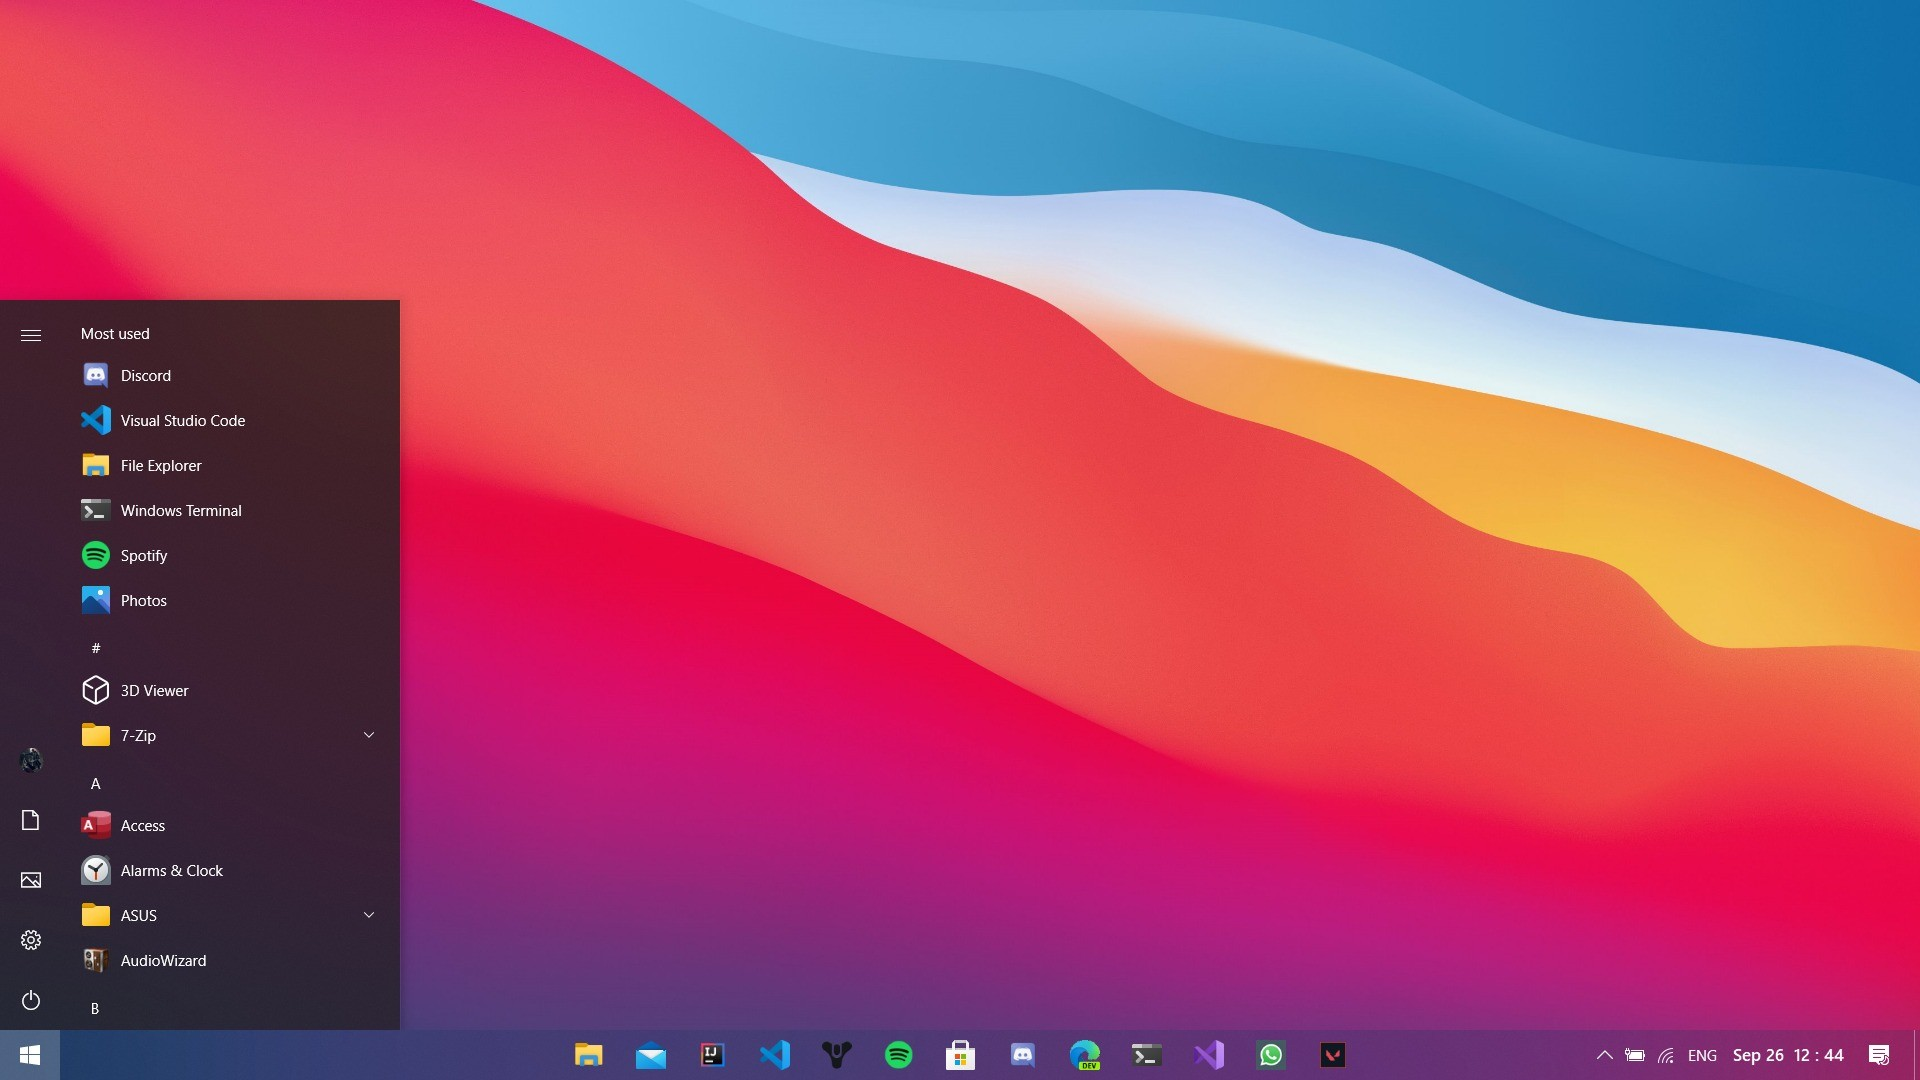 minima windows 10 - Windows 10 με minimal εμφάνιση